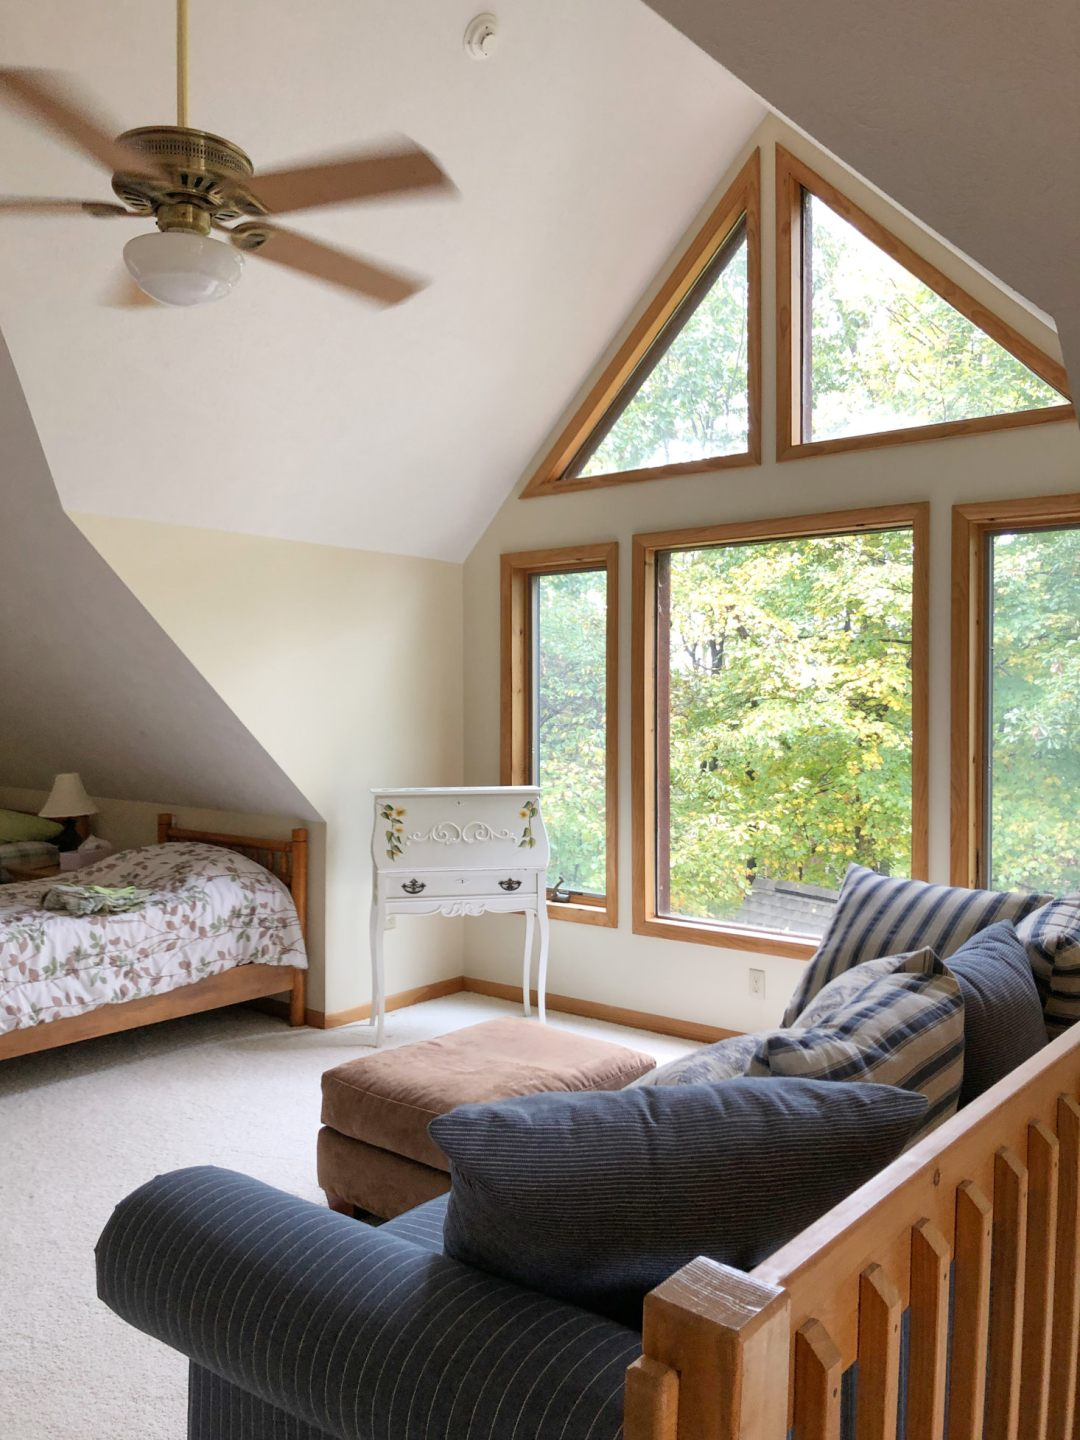 Triangle windows and ceiling fan in cabin loft